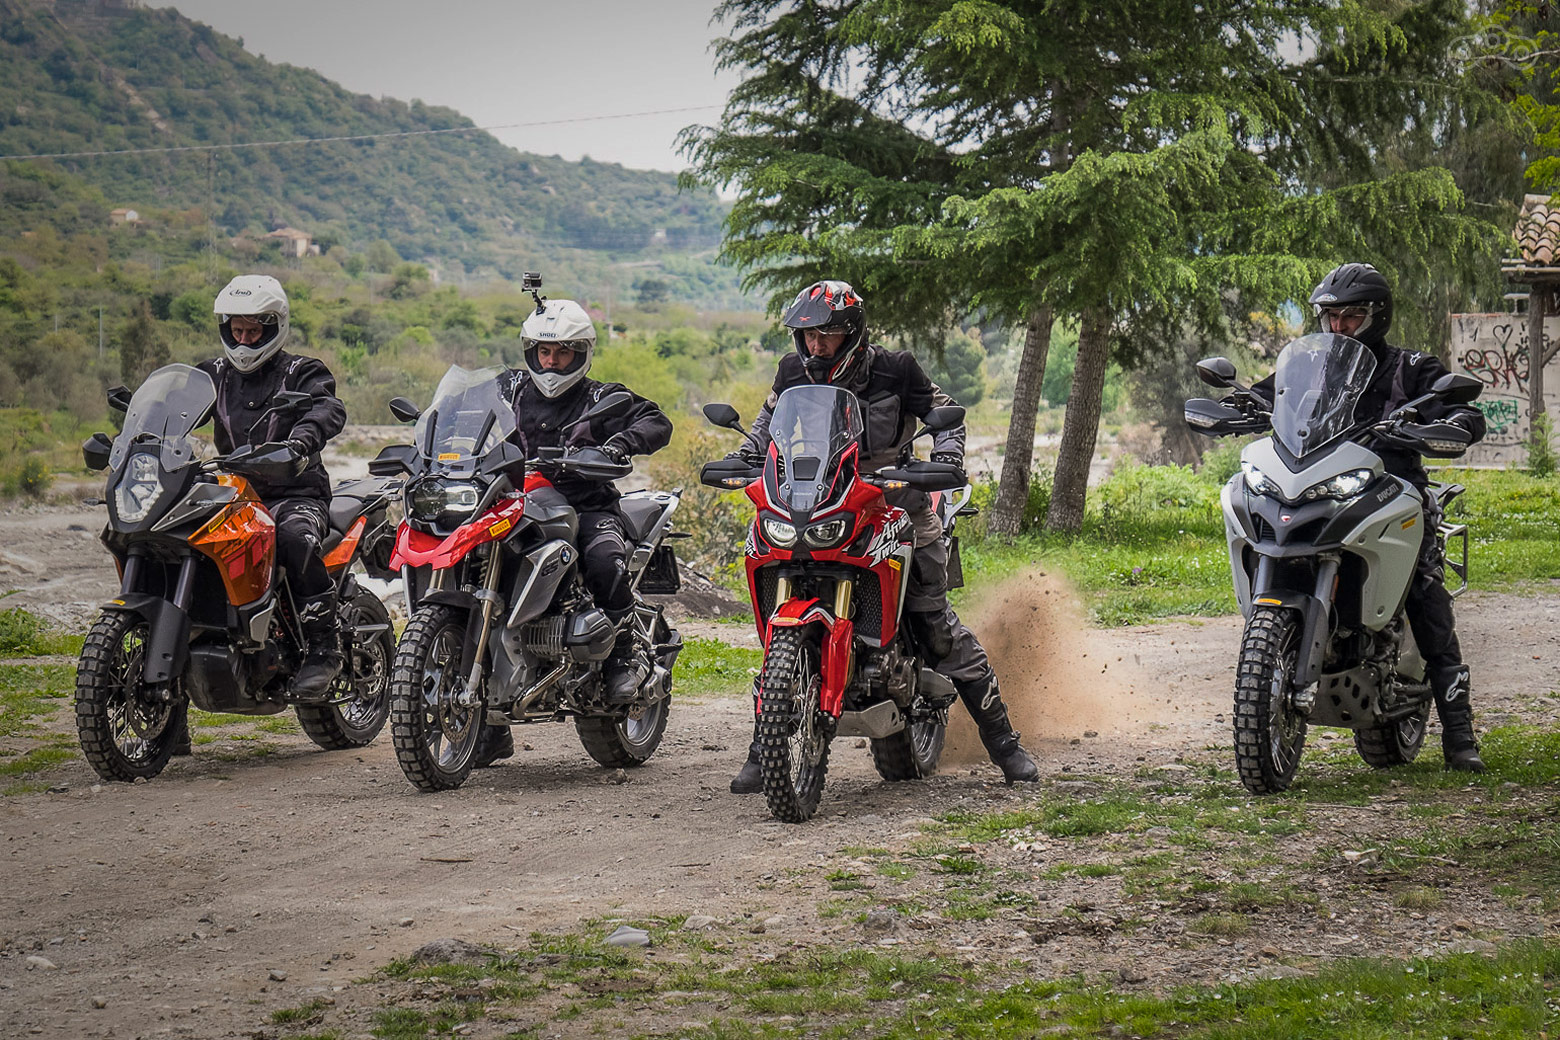 Сравнительный тест-драйв мотоциклов KTM 1190 Adventure, BMW R1200GS, Ducati Multistrada Enduro и совершенно новой Honda Africa Twin.